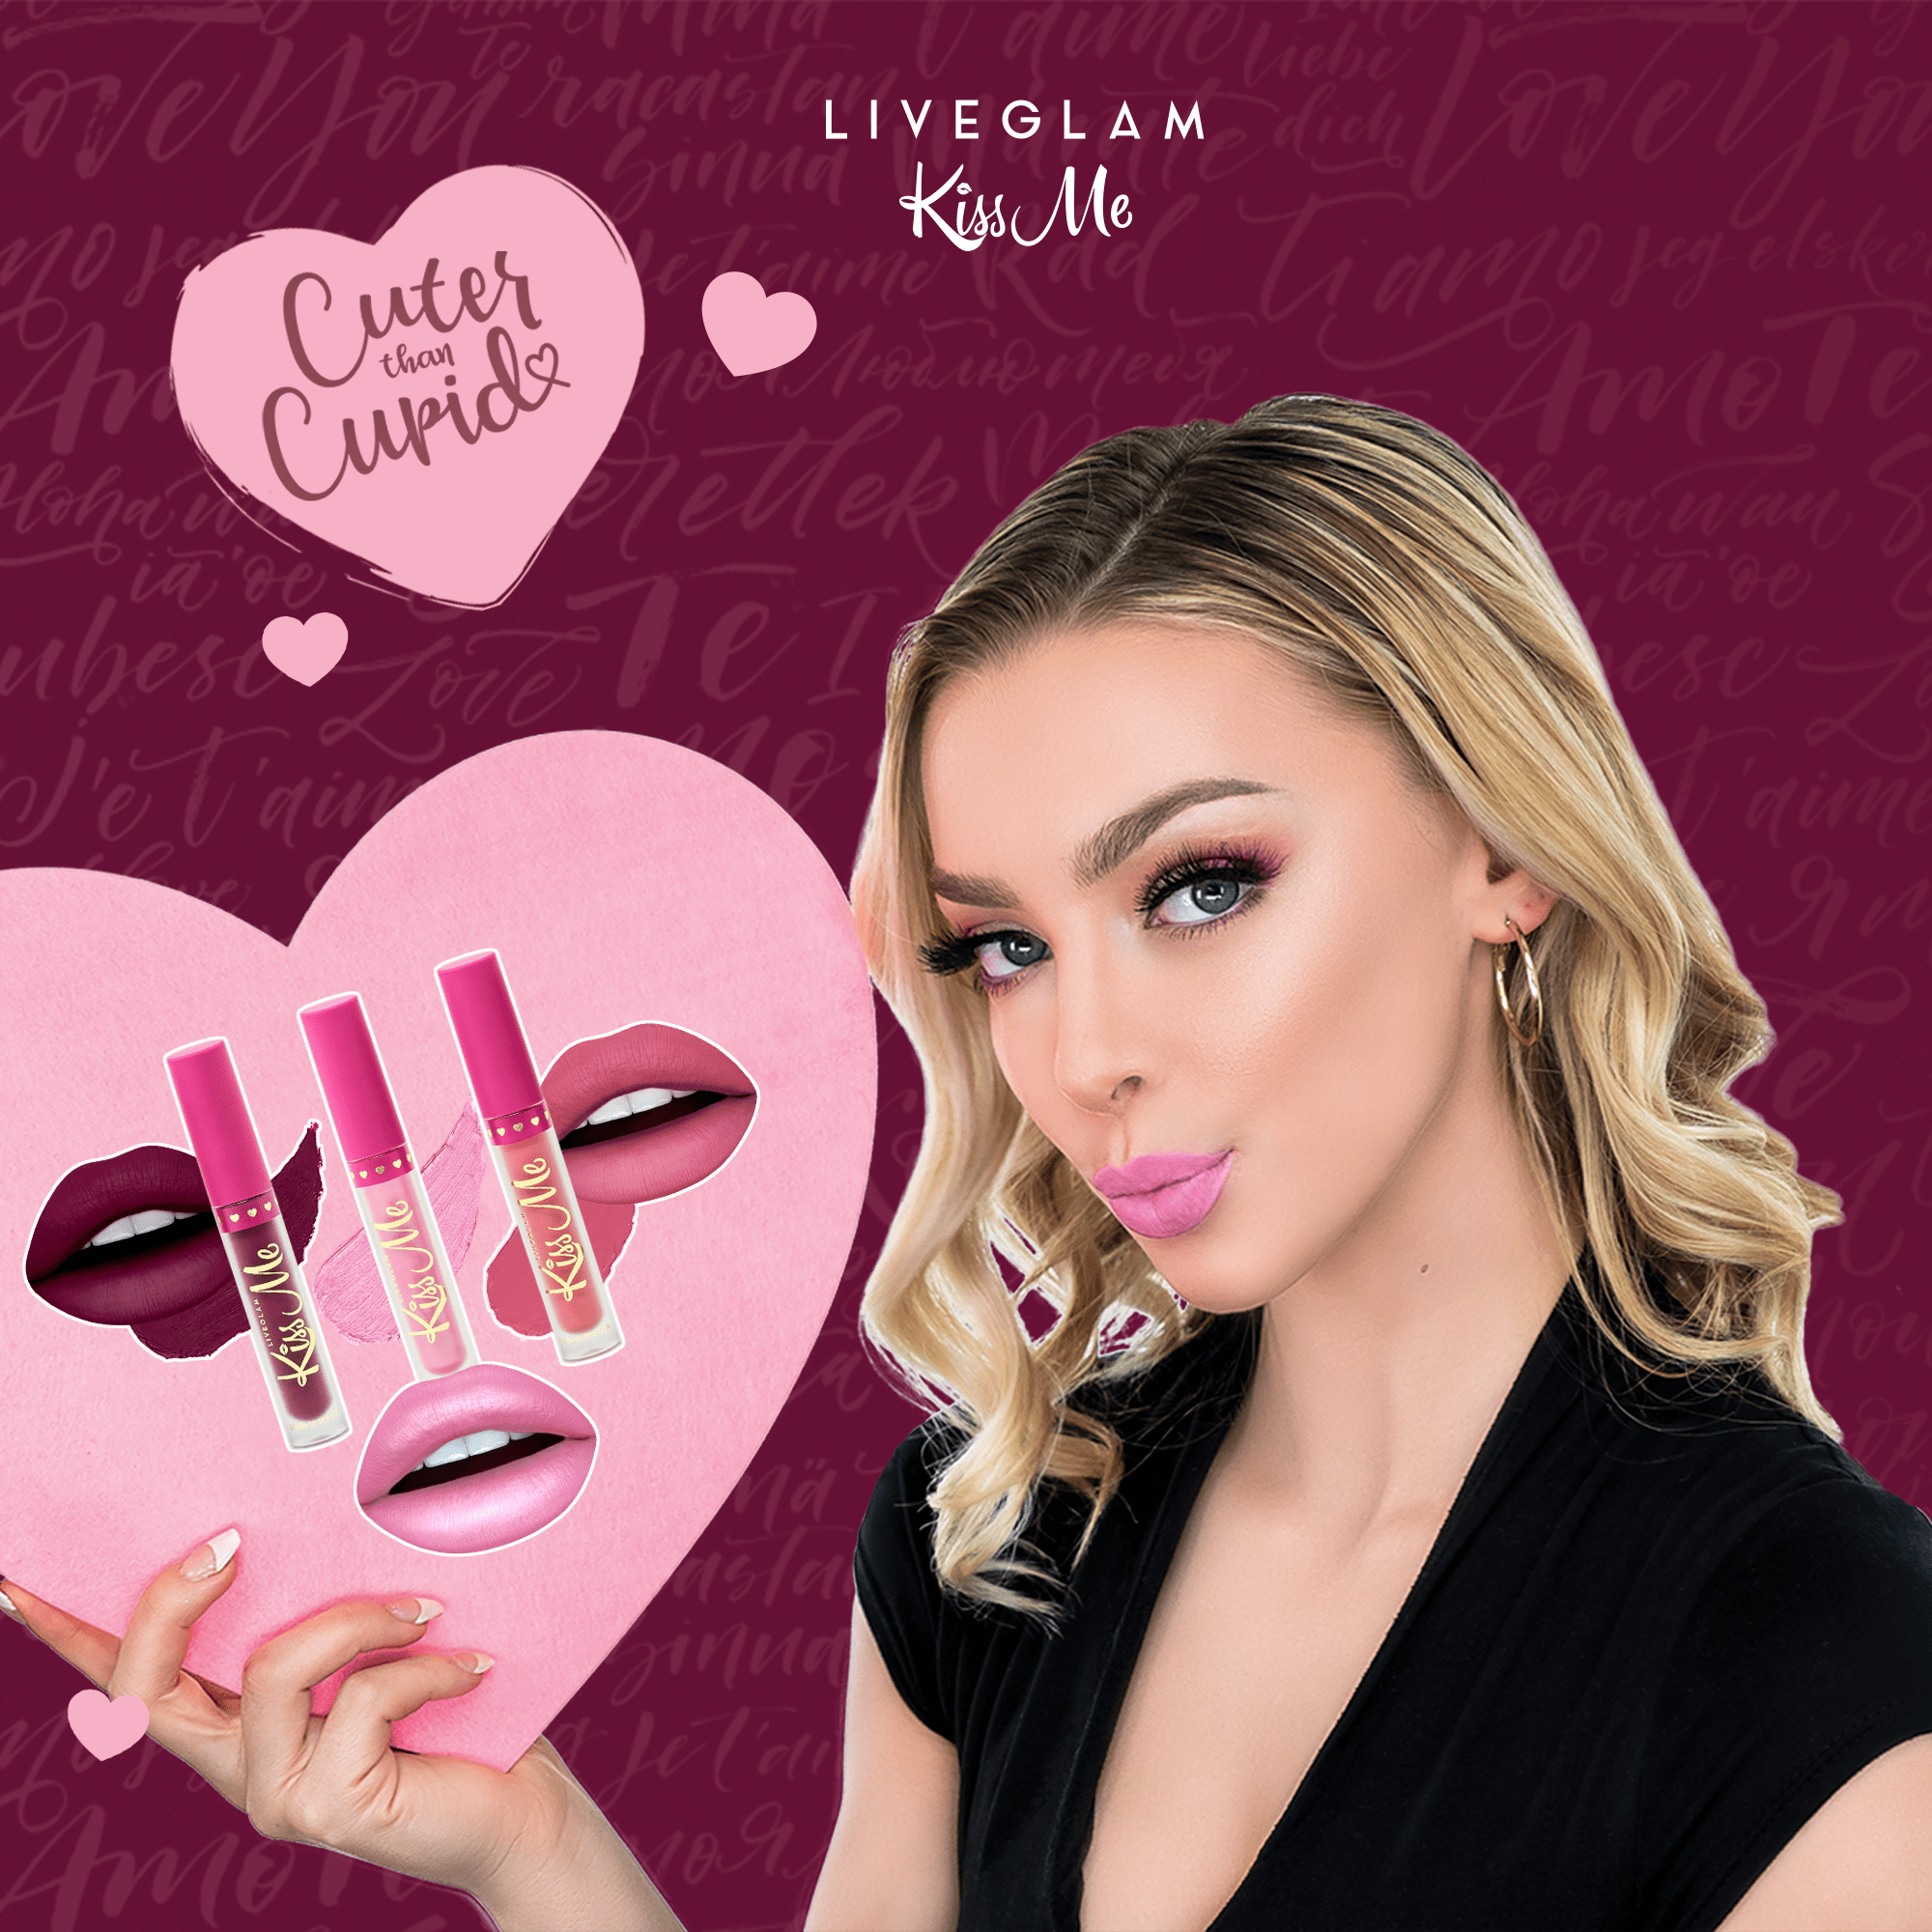 LiveGlam KissMe February 2019 Full Spoilers + Coupon!